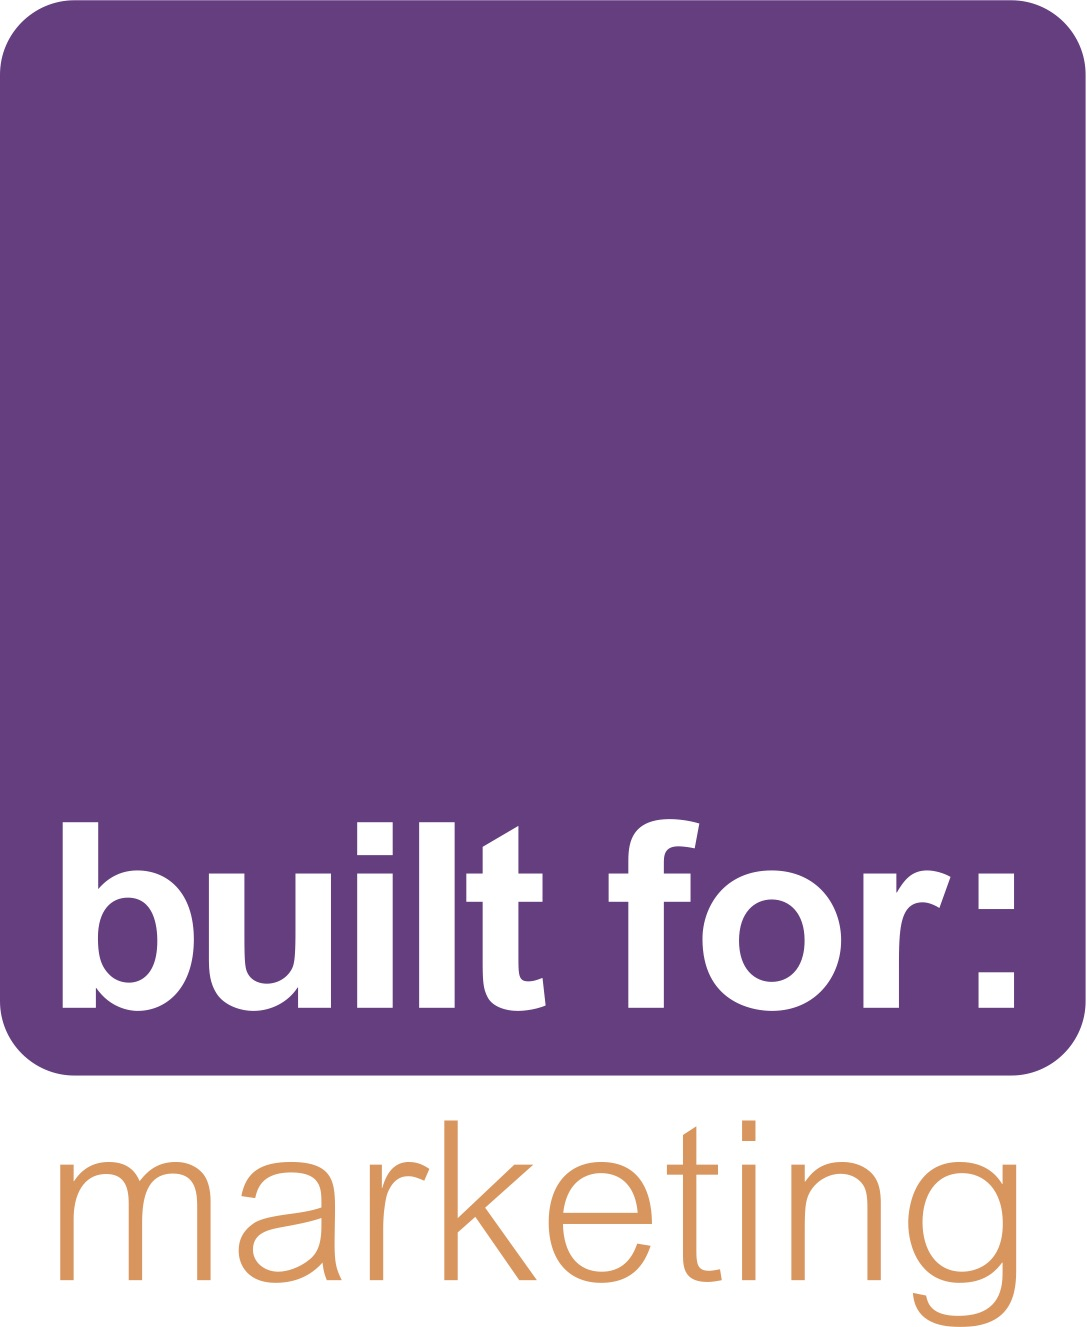 Built for Marketing